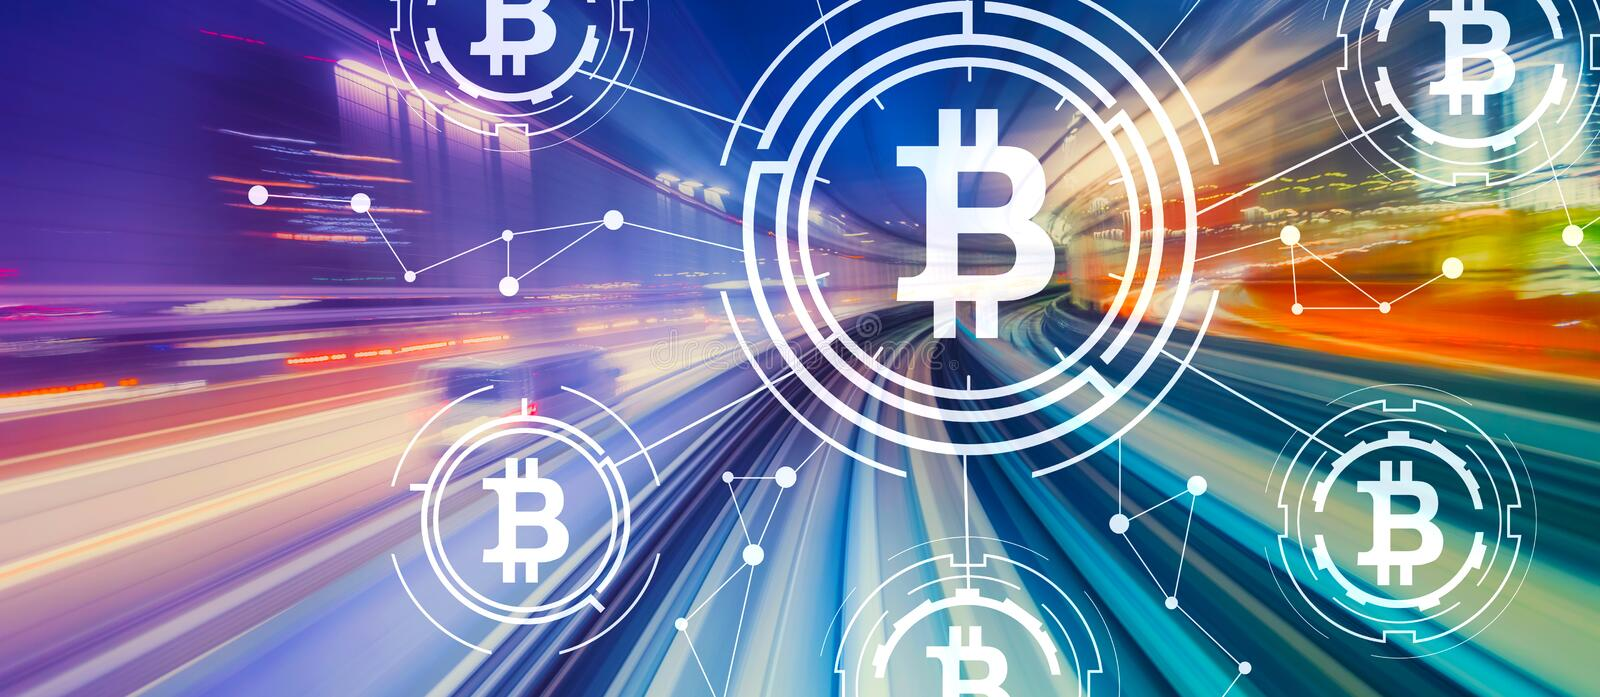 Bitcoin theme with high speed motion blur stock images